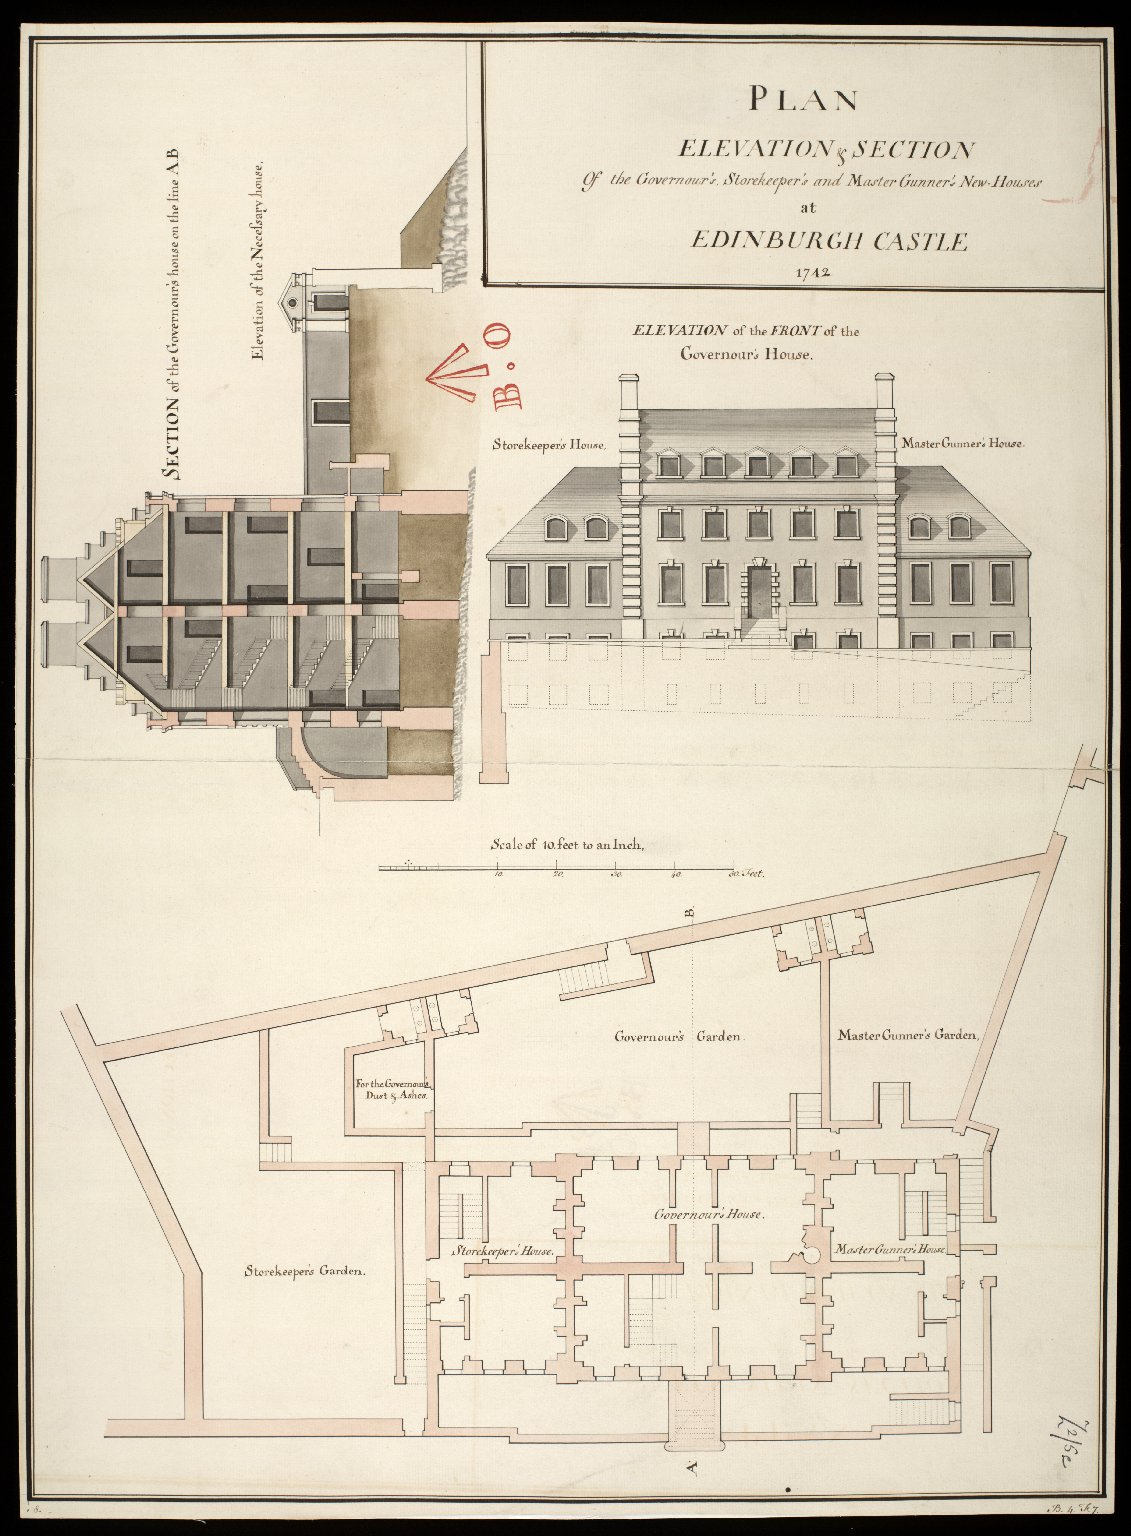 Plan, elevation & section of the Governour's, storekeeper's and master gunner's new=houses at Edinburgh Castle 1742 [copy] [1 of 1]